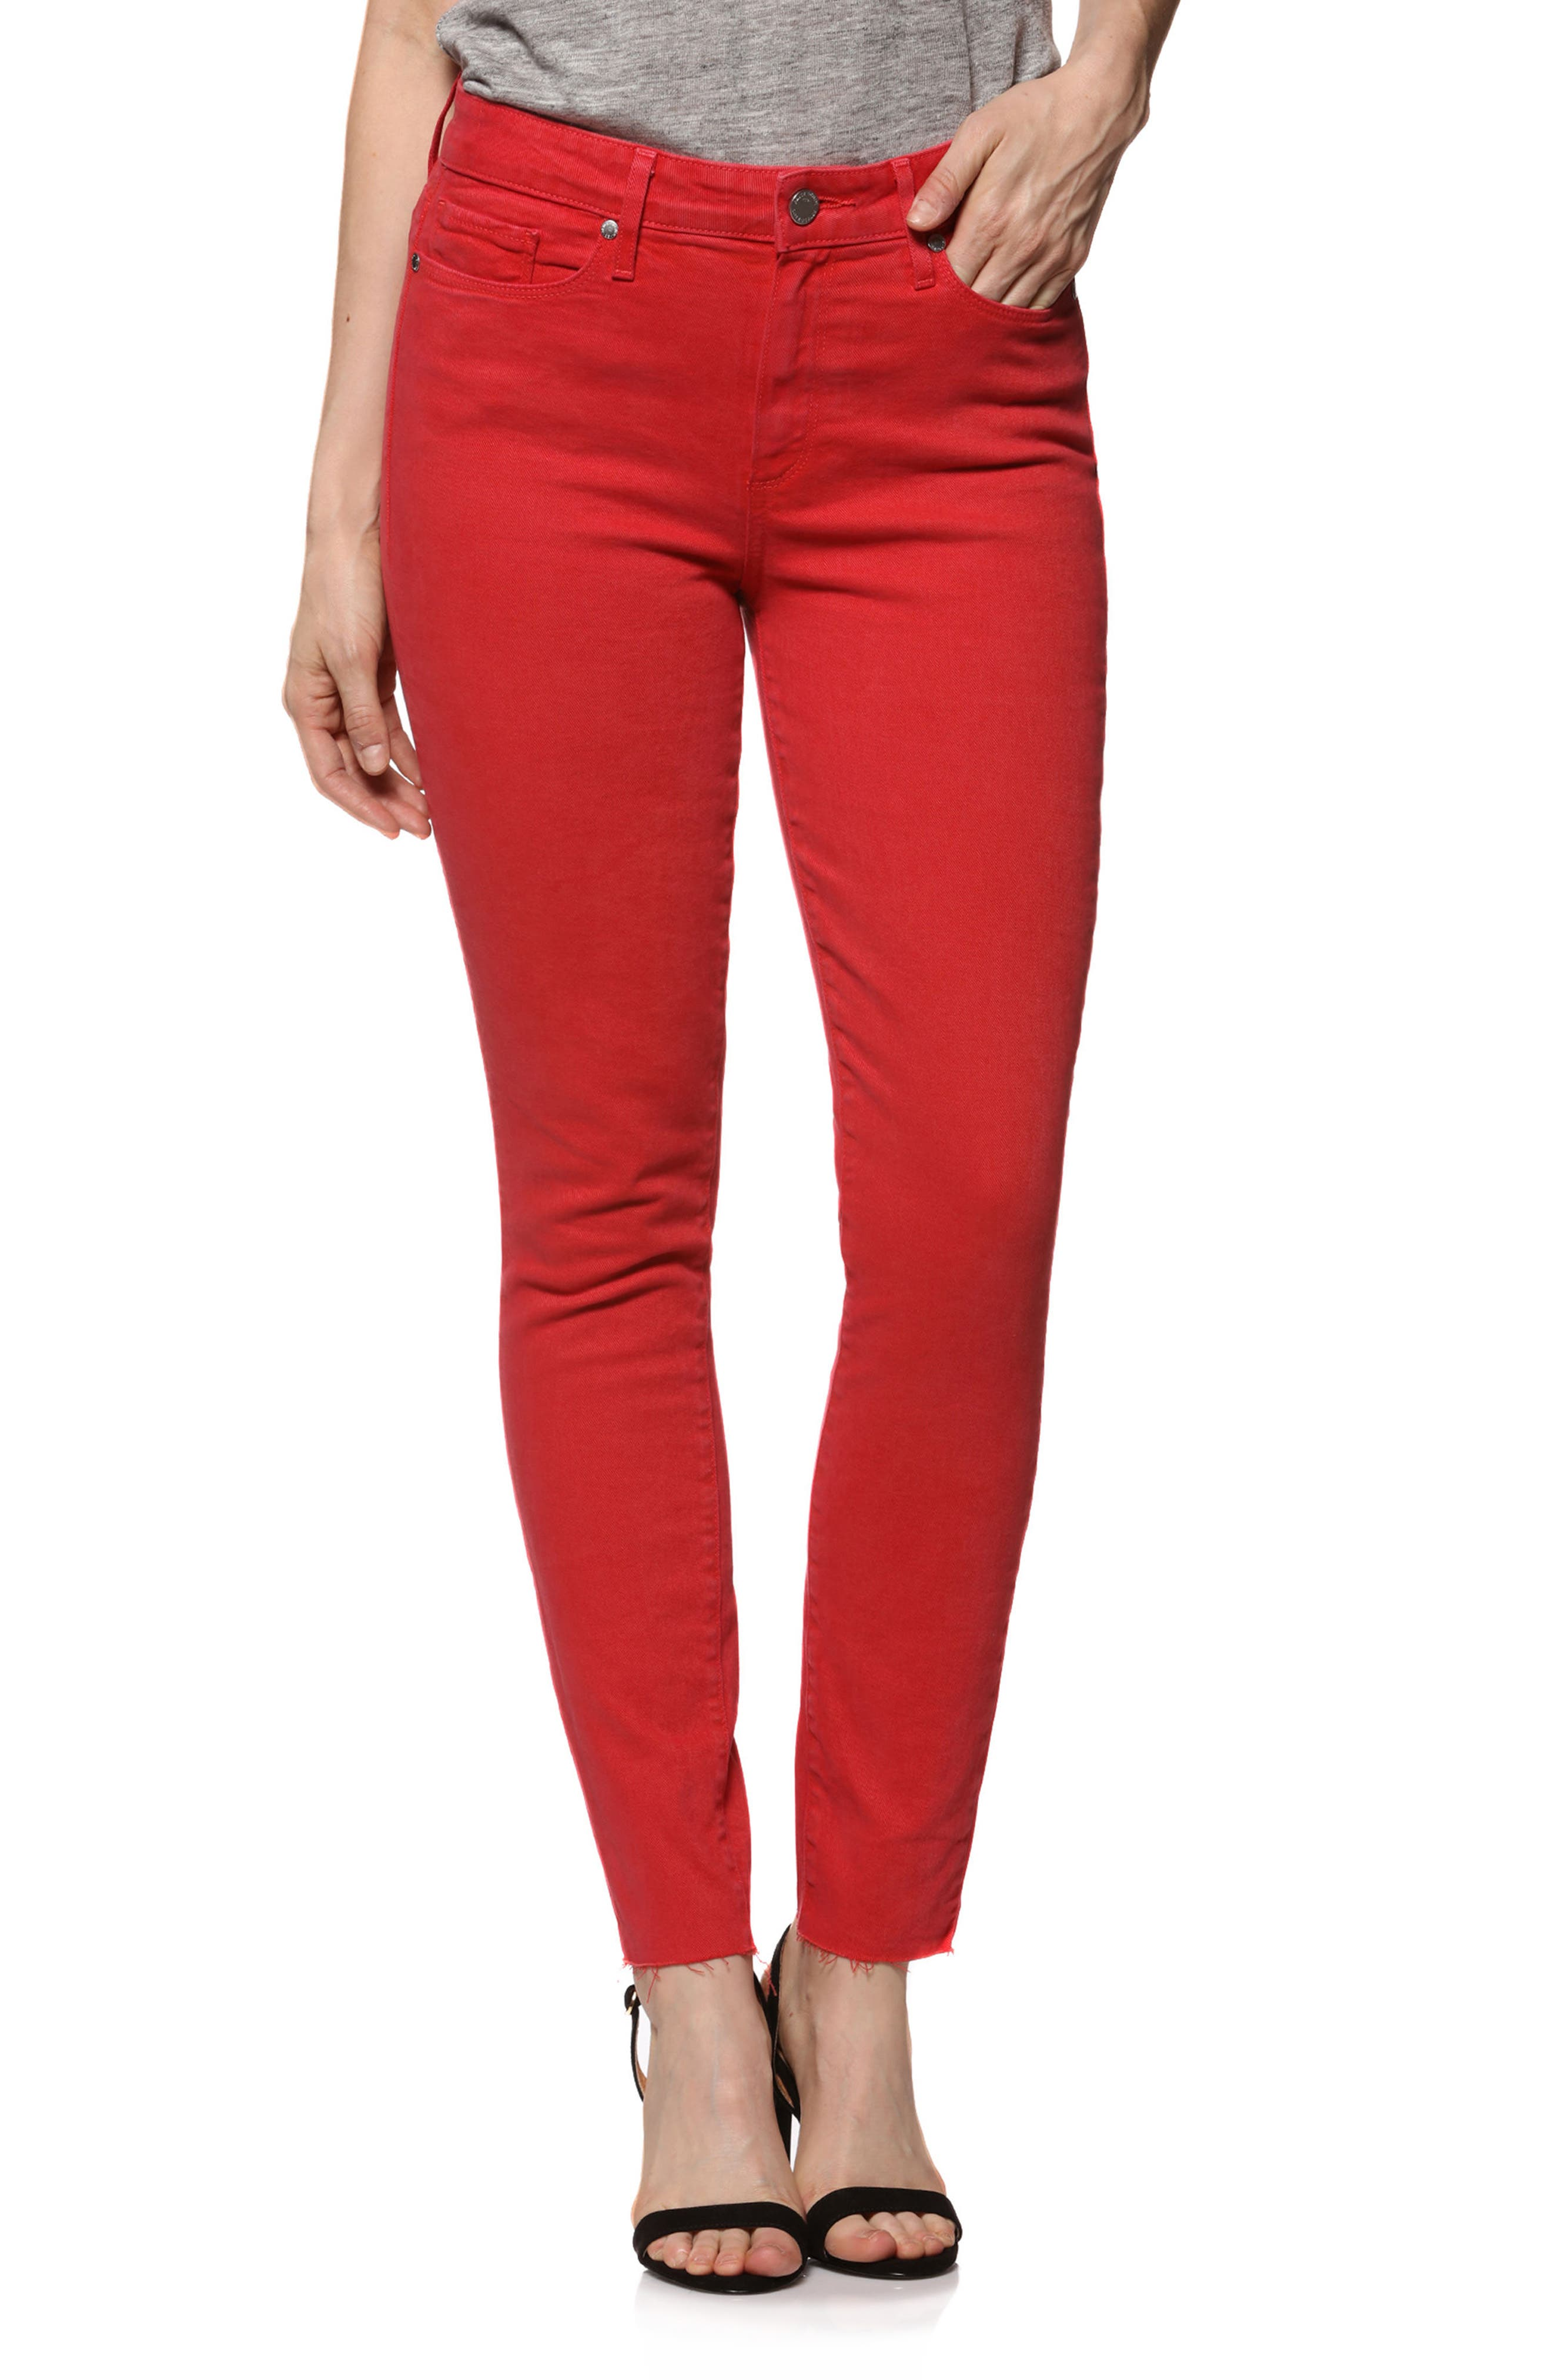 Main Image - PAIGE Hoxton High Waist Ankle Skinny Jeans (Vintage Cherry Bomb)